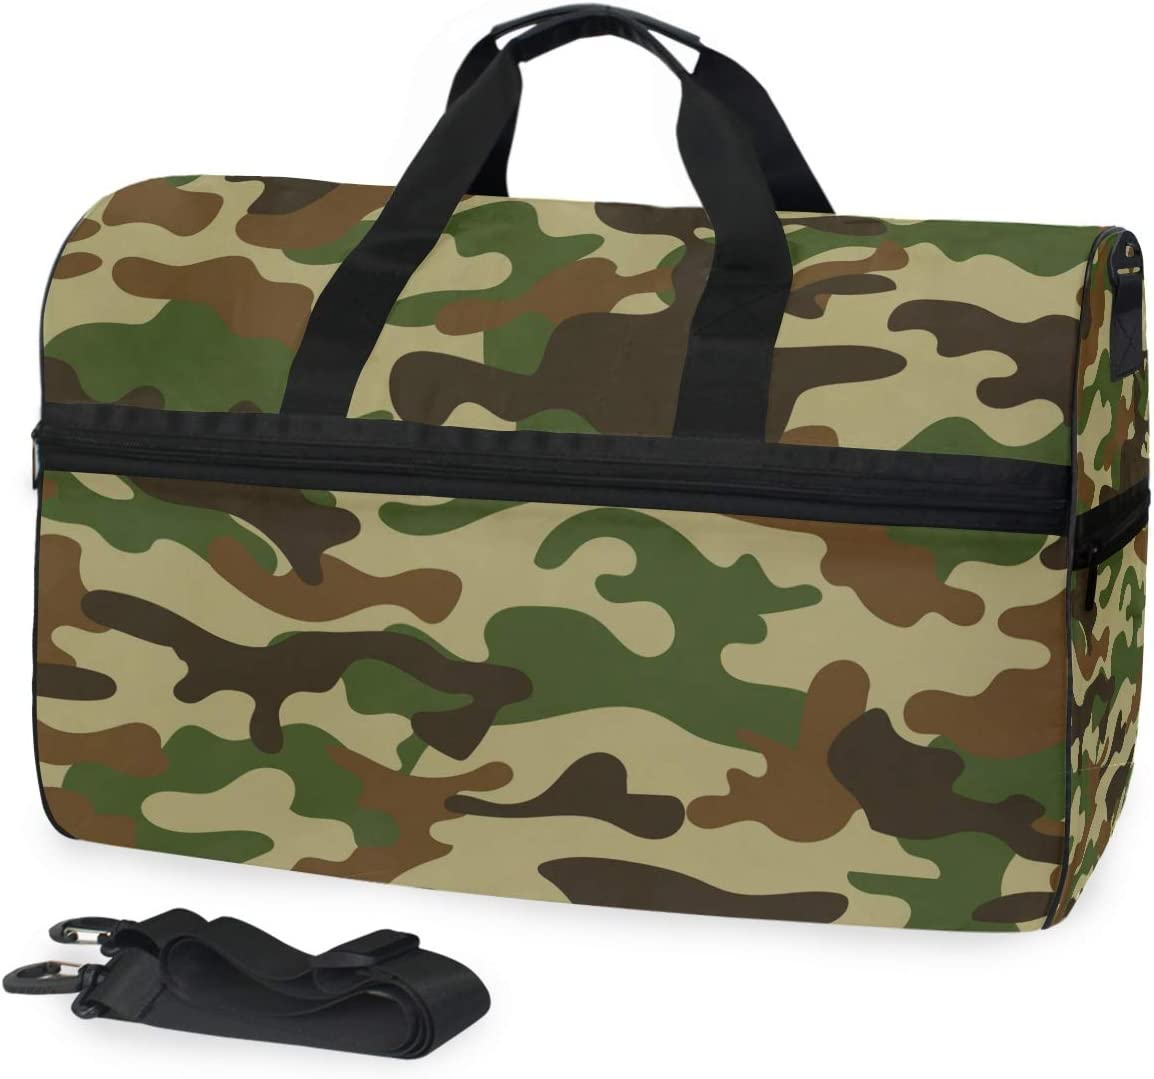 Military Camouflage Sports Gym Bag with Shoes Compartment Travel Duffel Bag for Men and Women